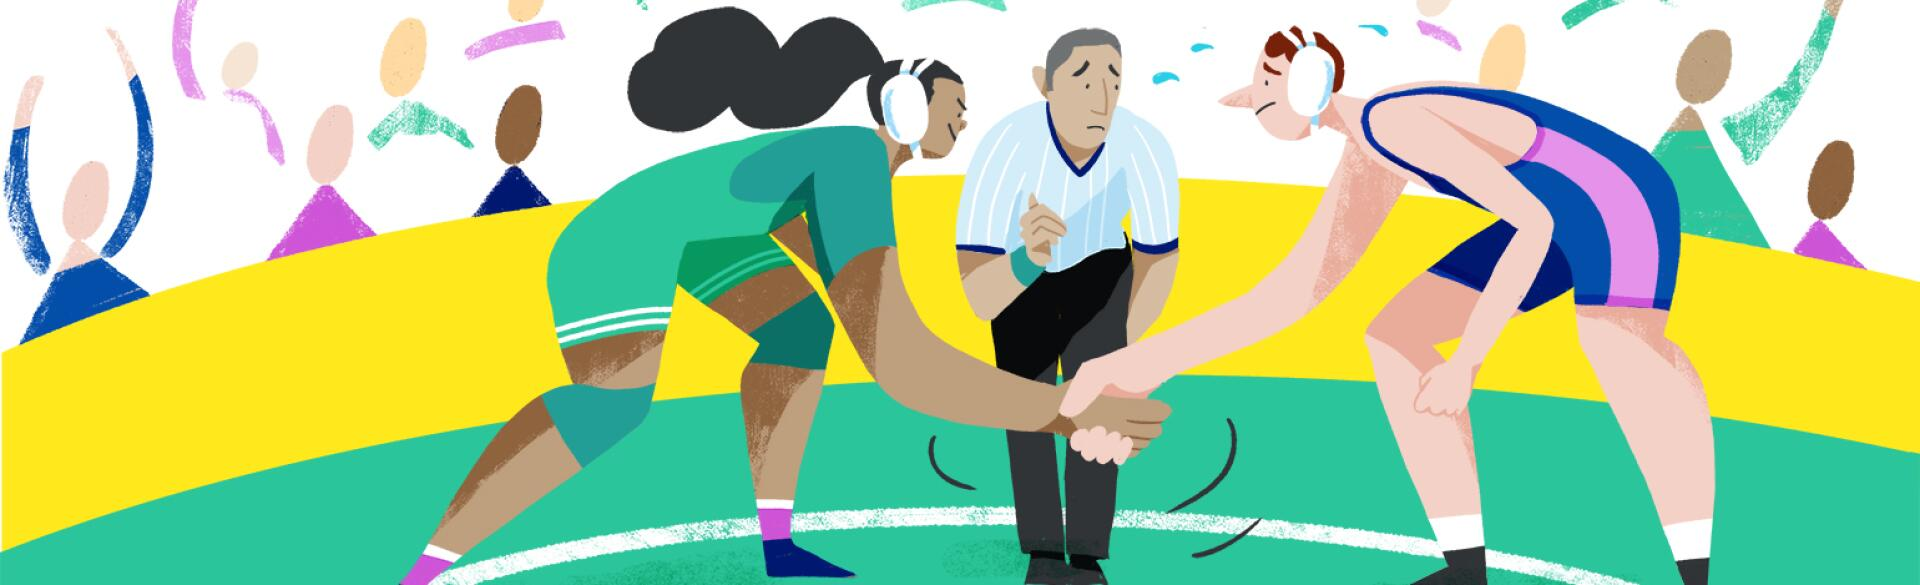 illustration_of_boy_shaking_hands_with_girl_for_wrestling_match_by_fiona_dunphy_1540x600.jpg